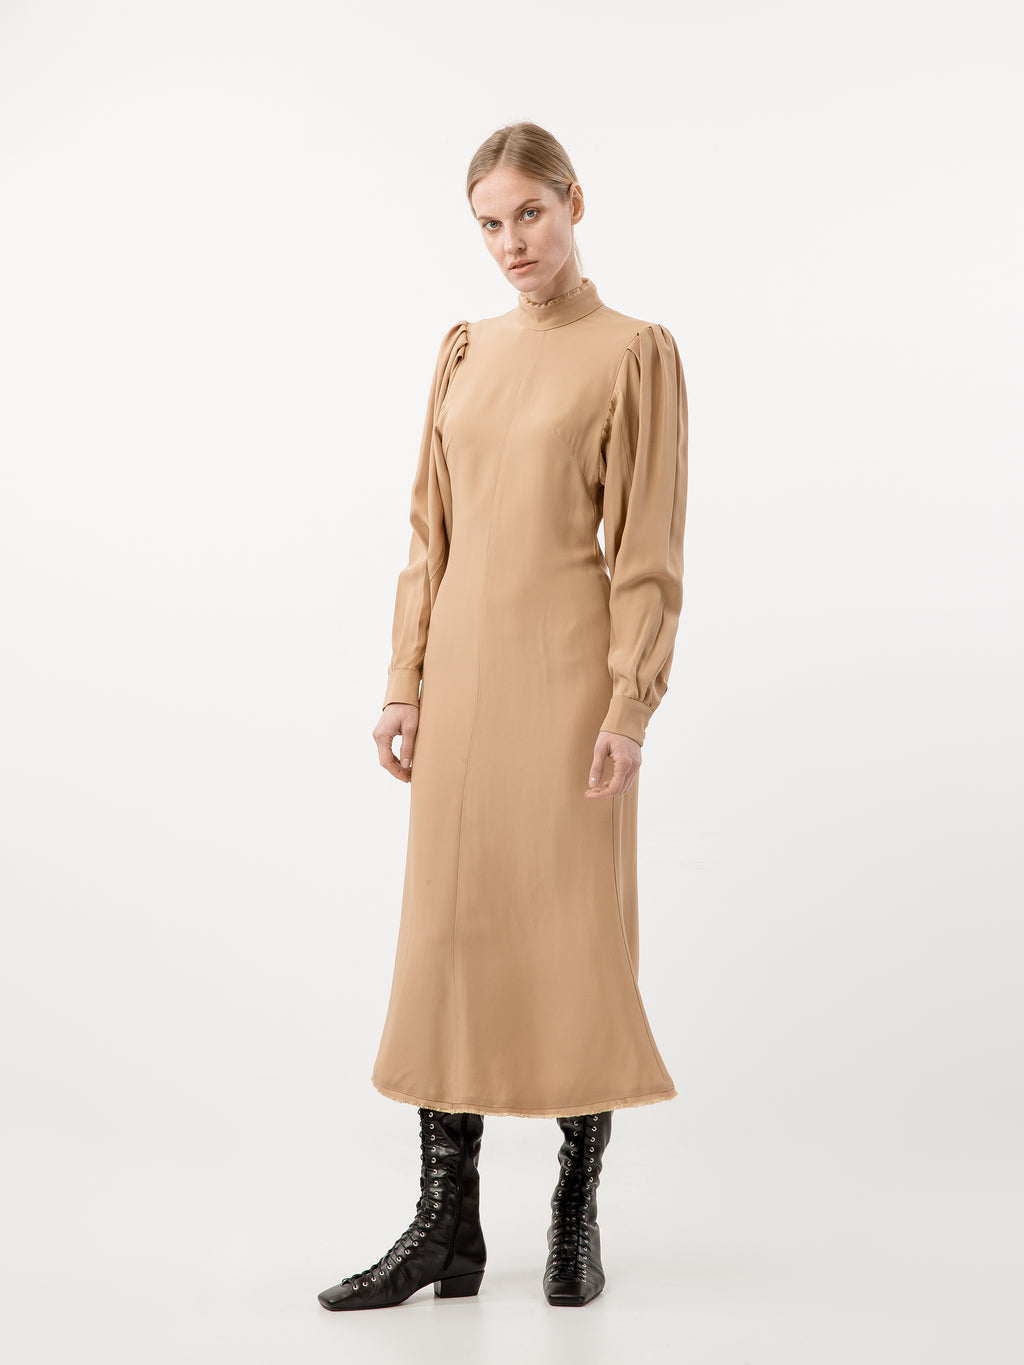 Silk Beige Dress